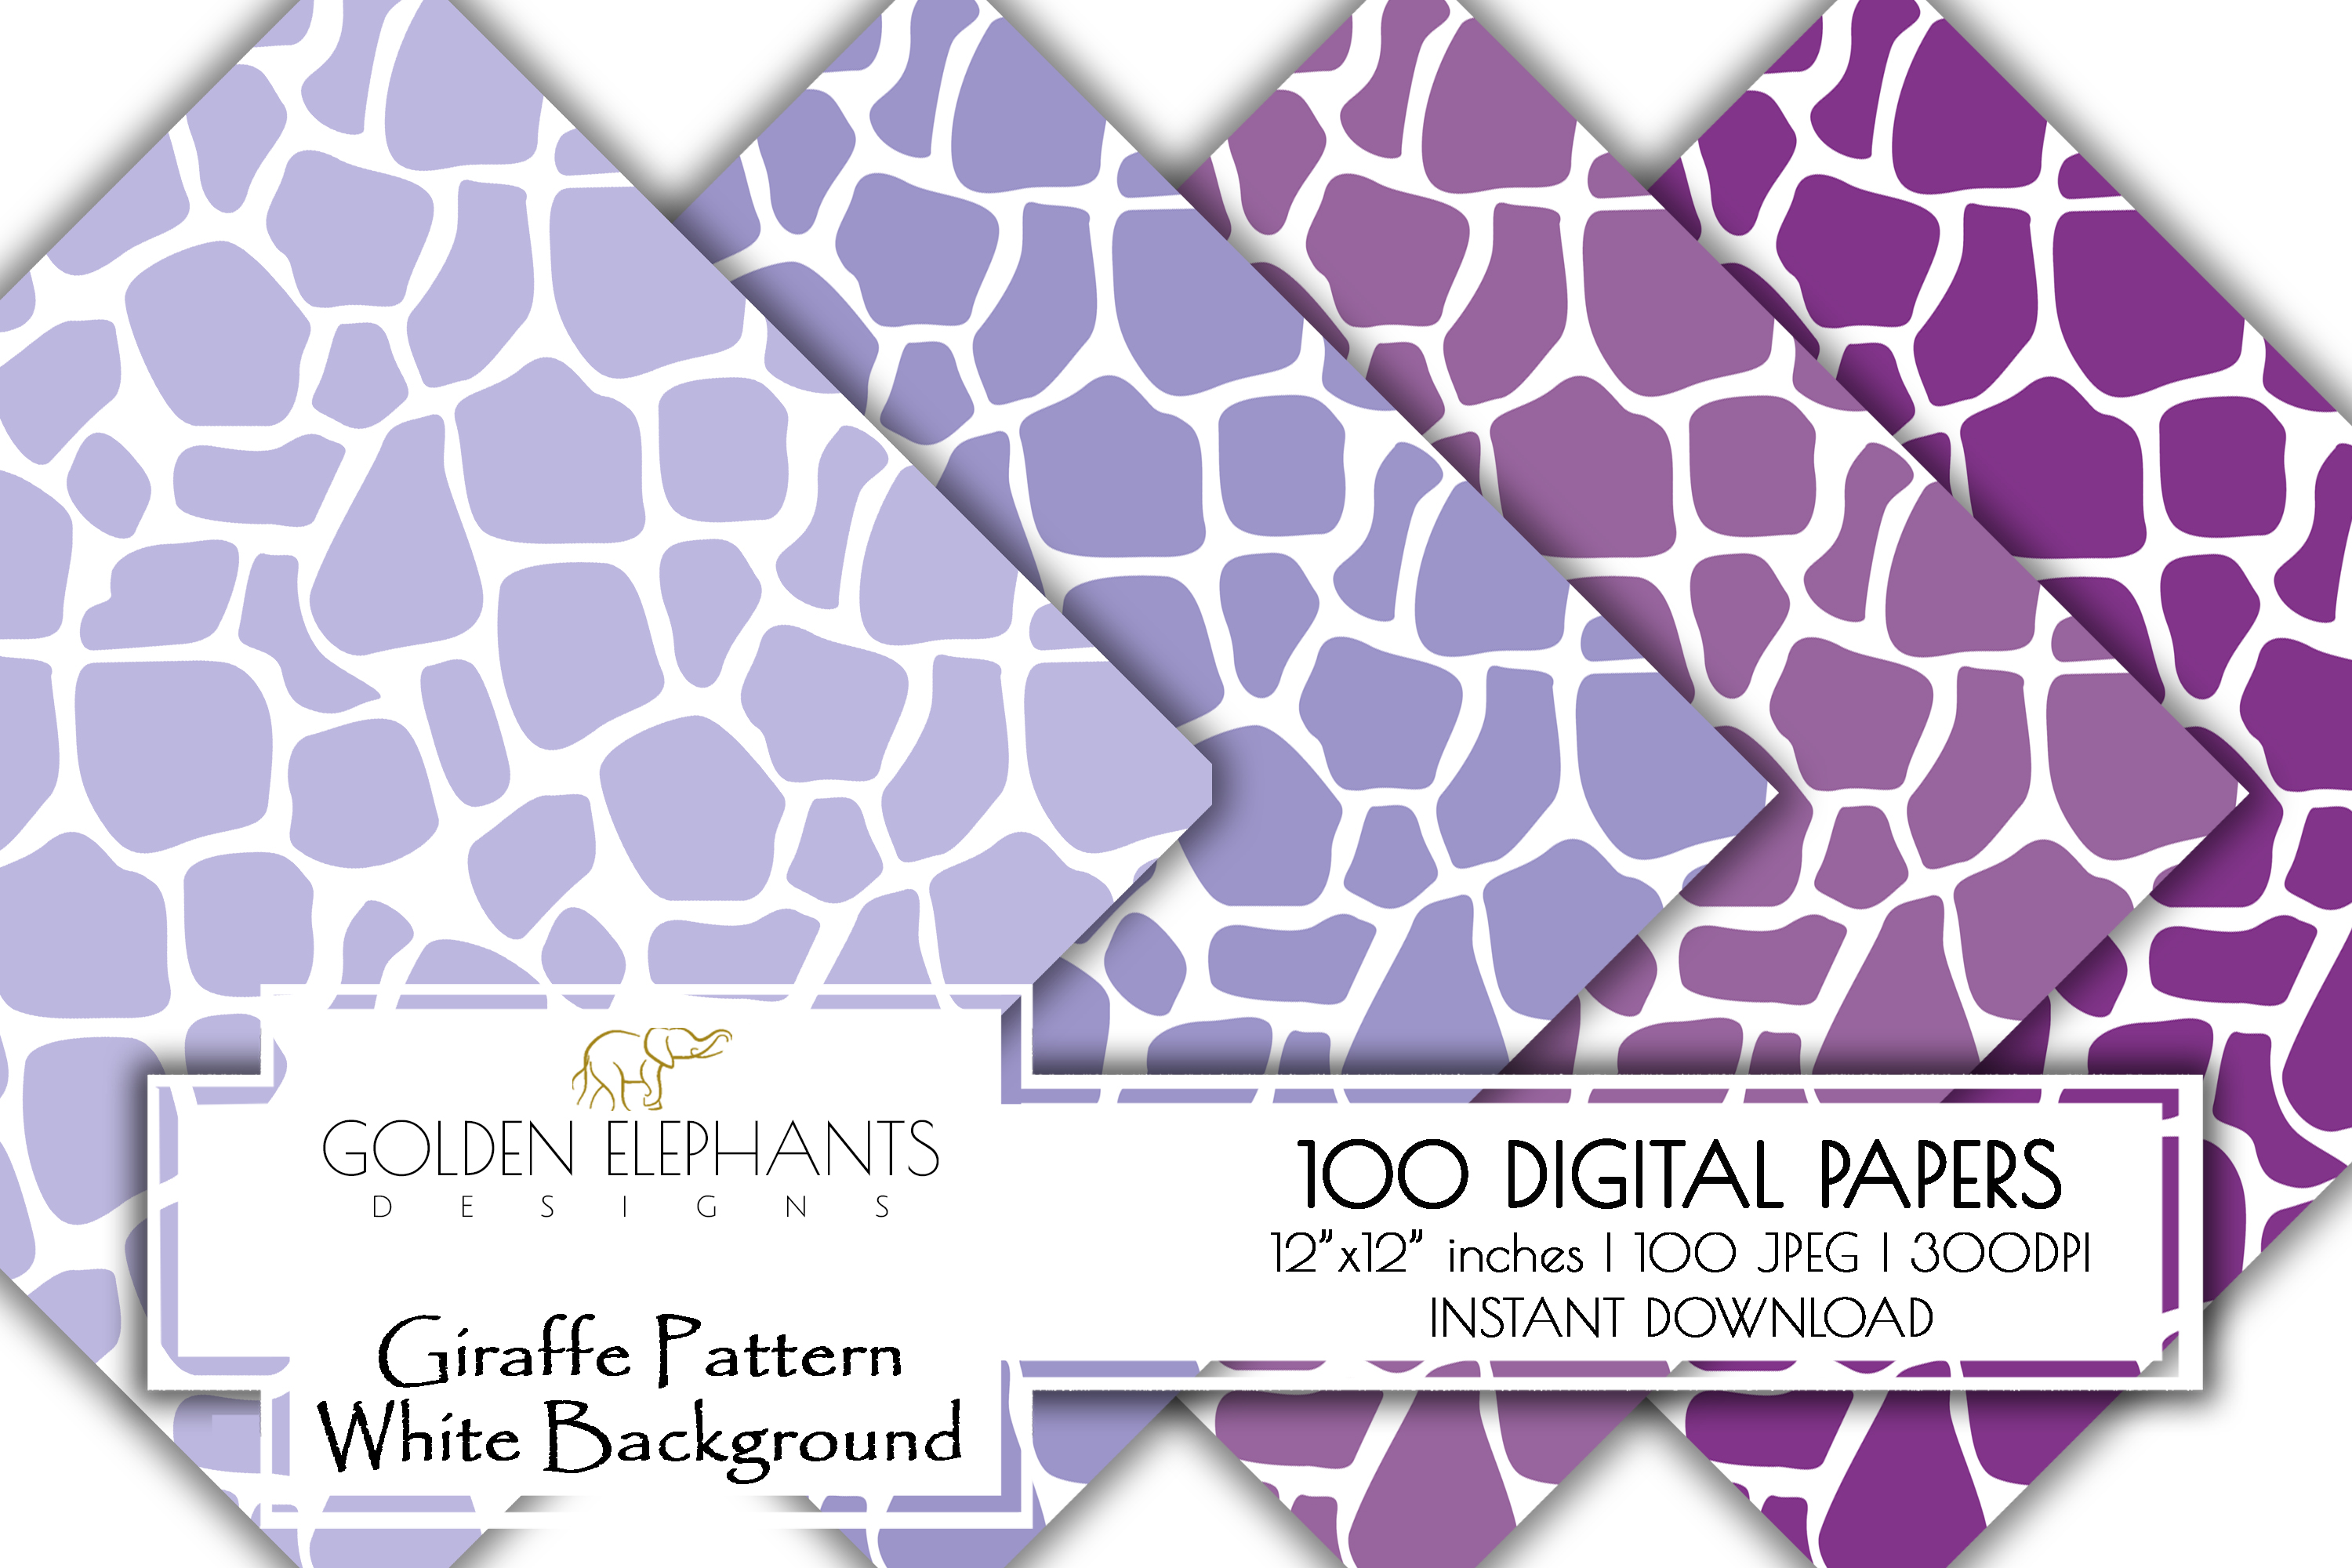 100 Giraffe Pattern w/ White Background Digital Paper example image 6